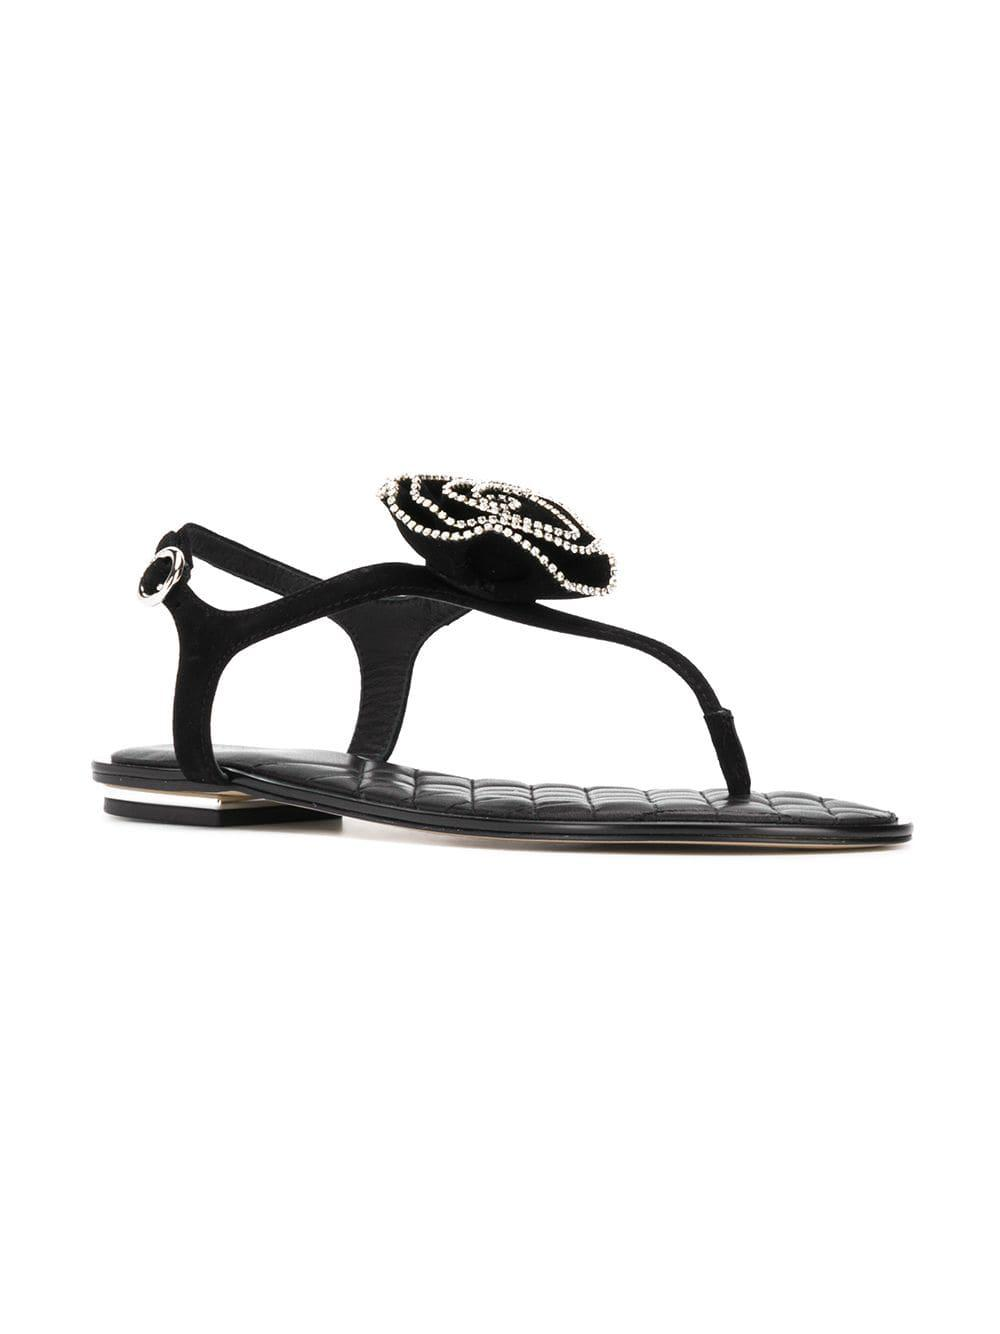 cbfe5d10f09cea Lyst - Michael Michael Kors Lucia Thong Sandals in Black